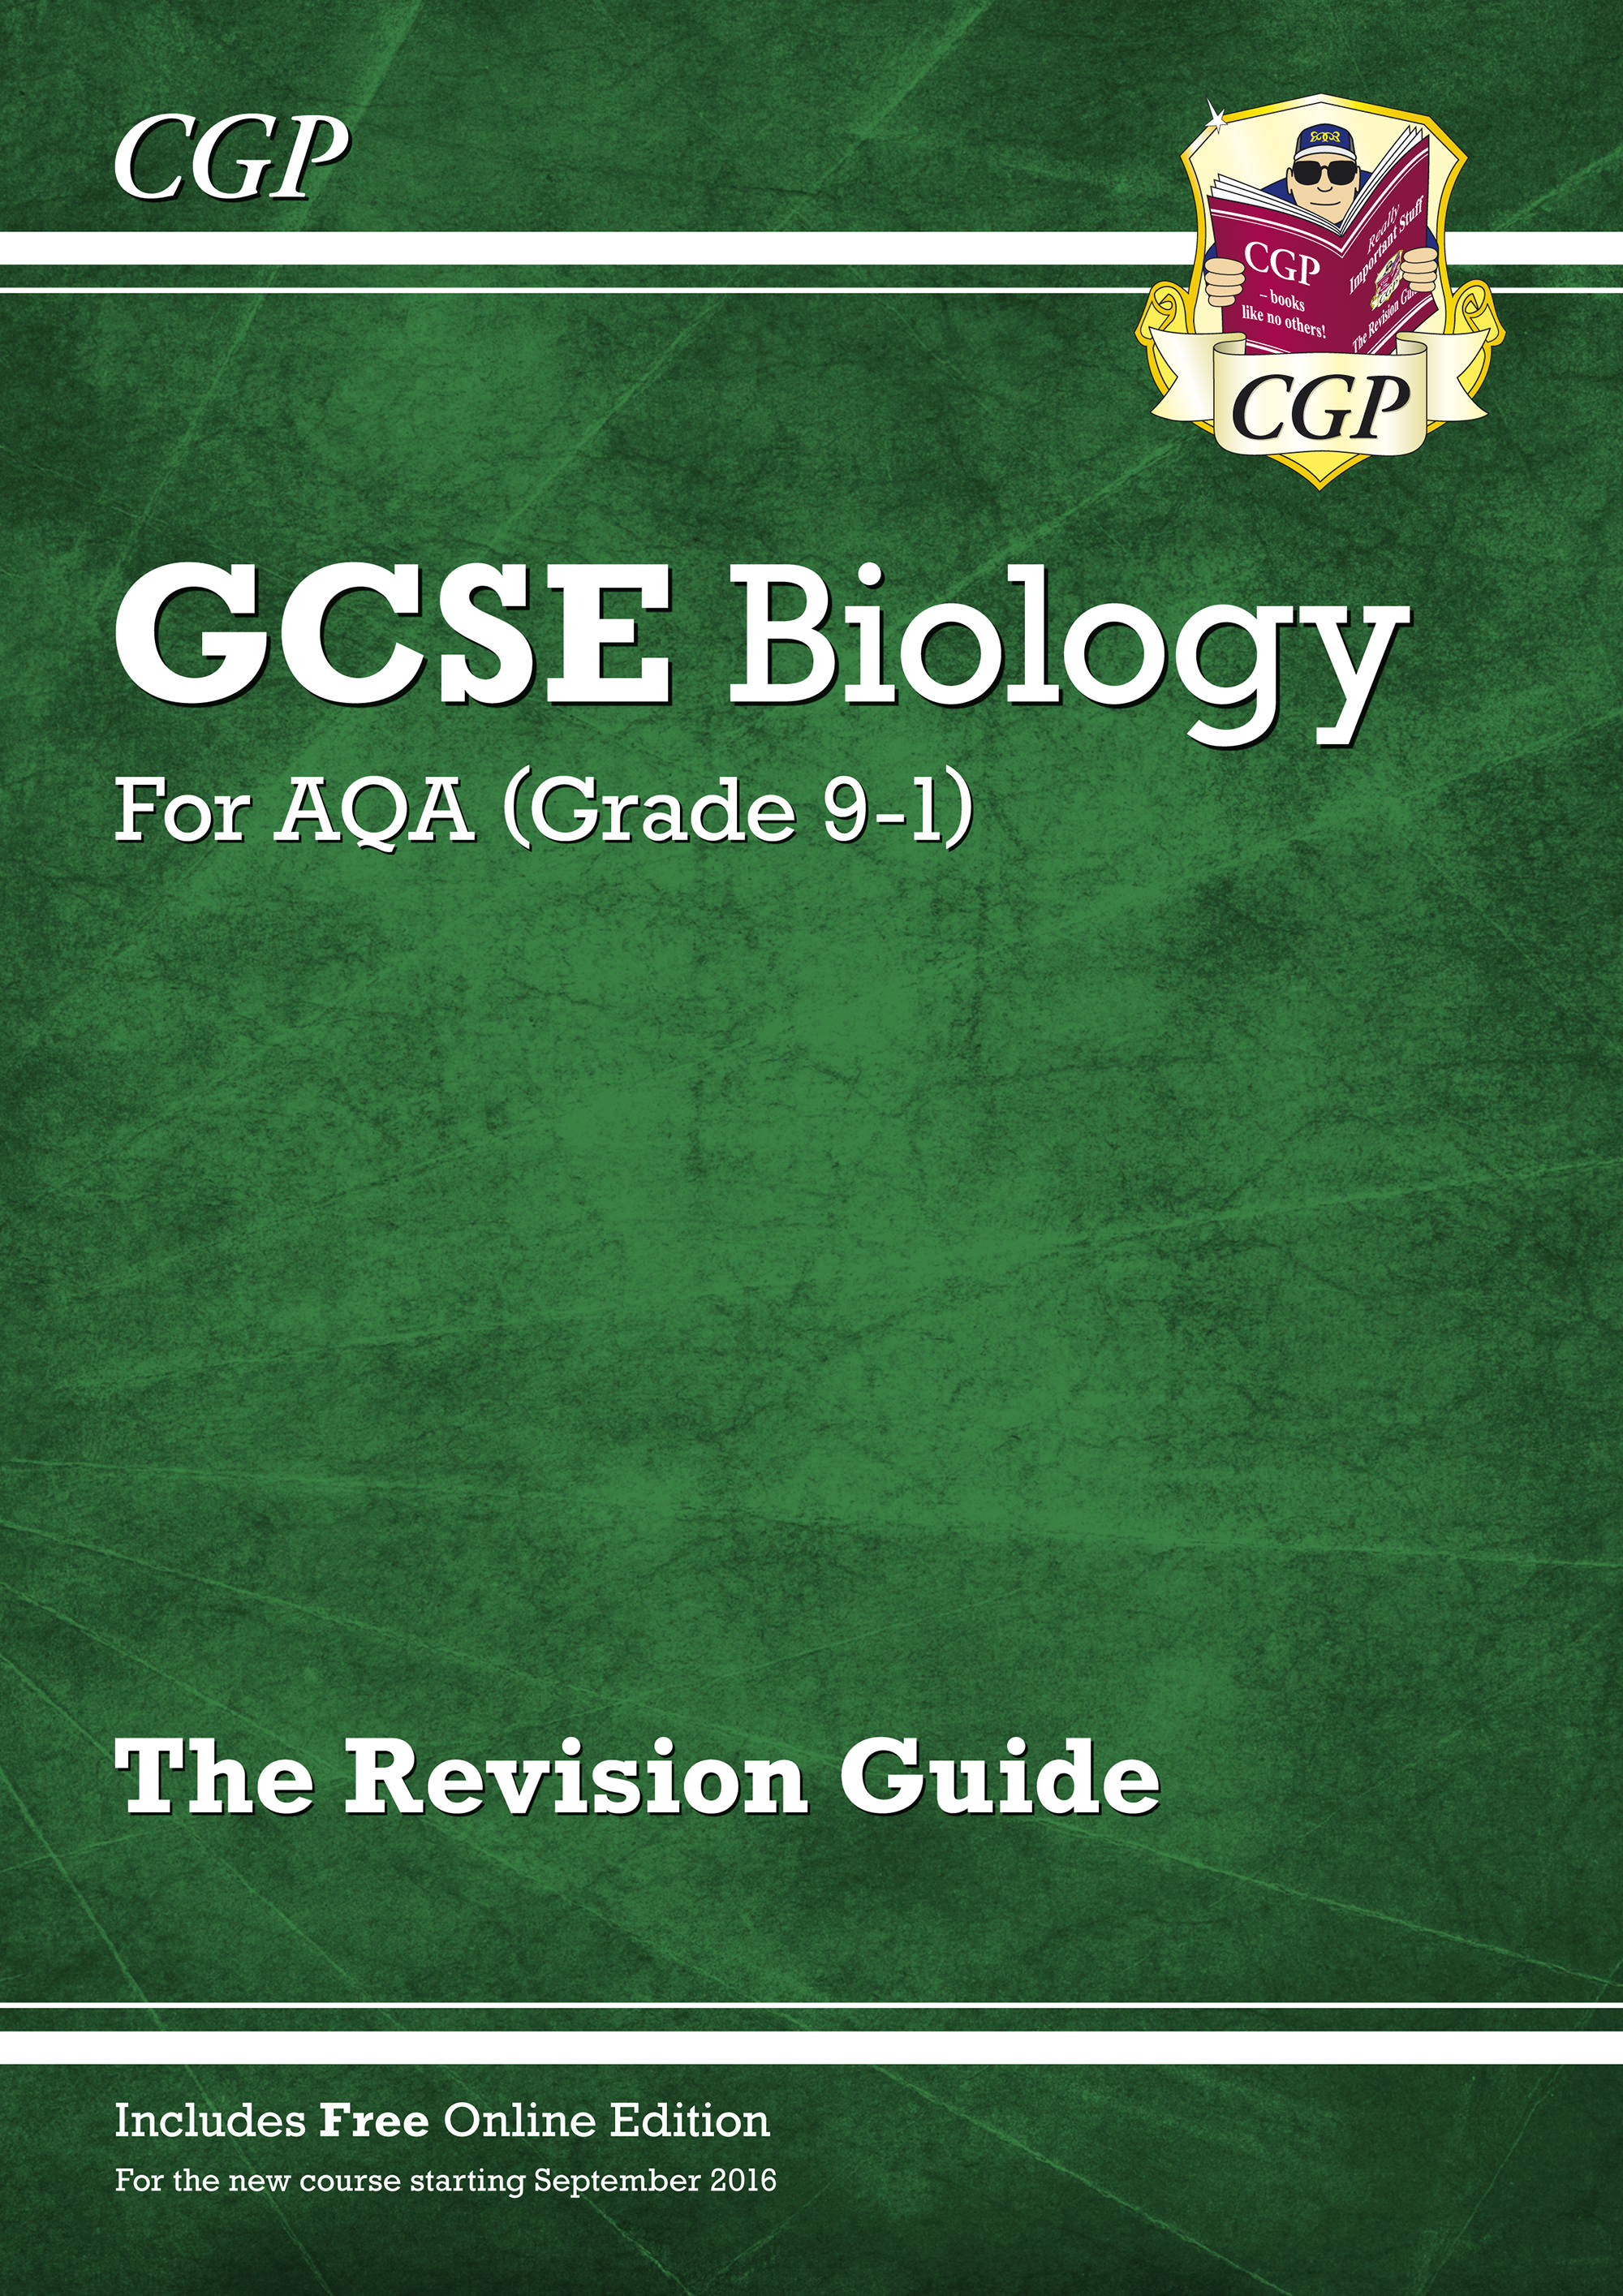 BAR45 - Grade 9-1 GCSE Biology: AQA Revision Guide with Online Edition - Higher